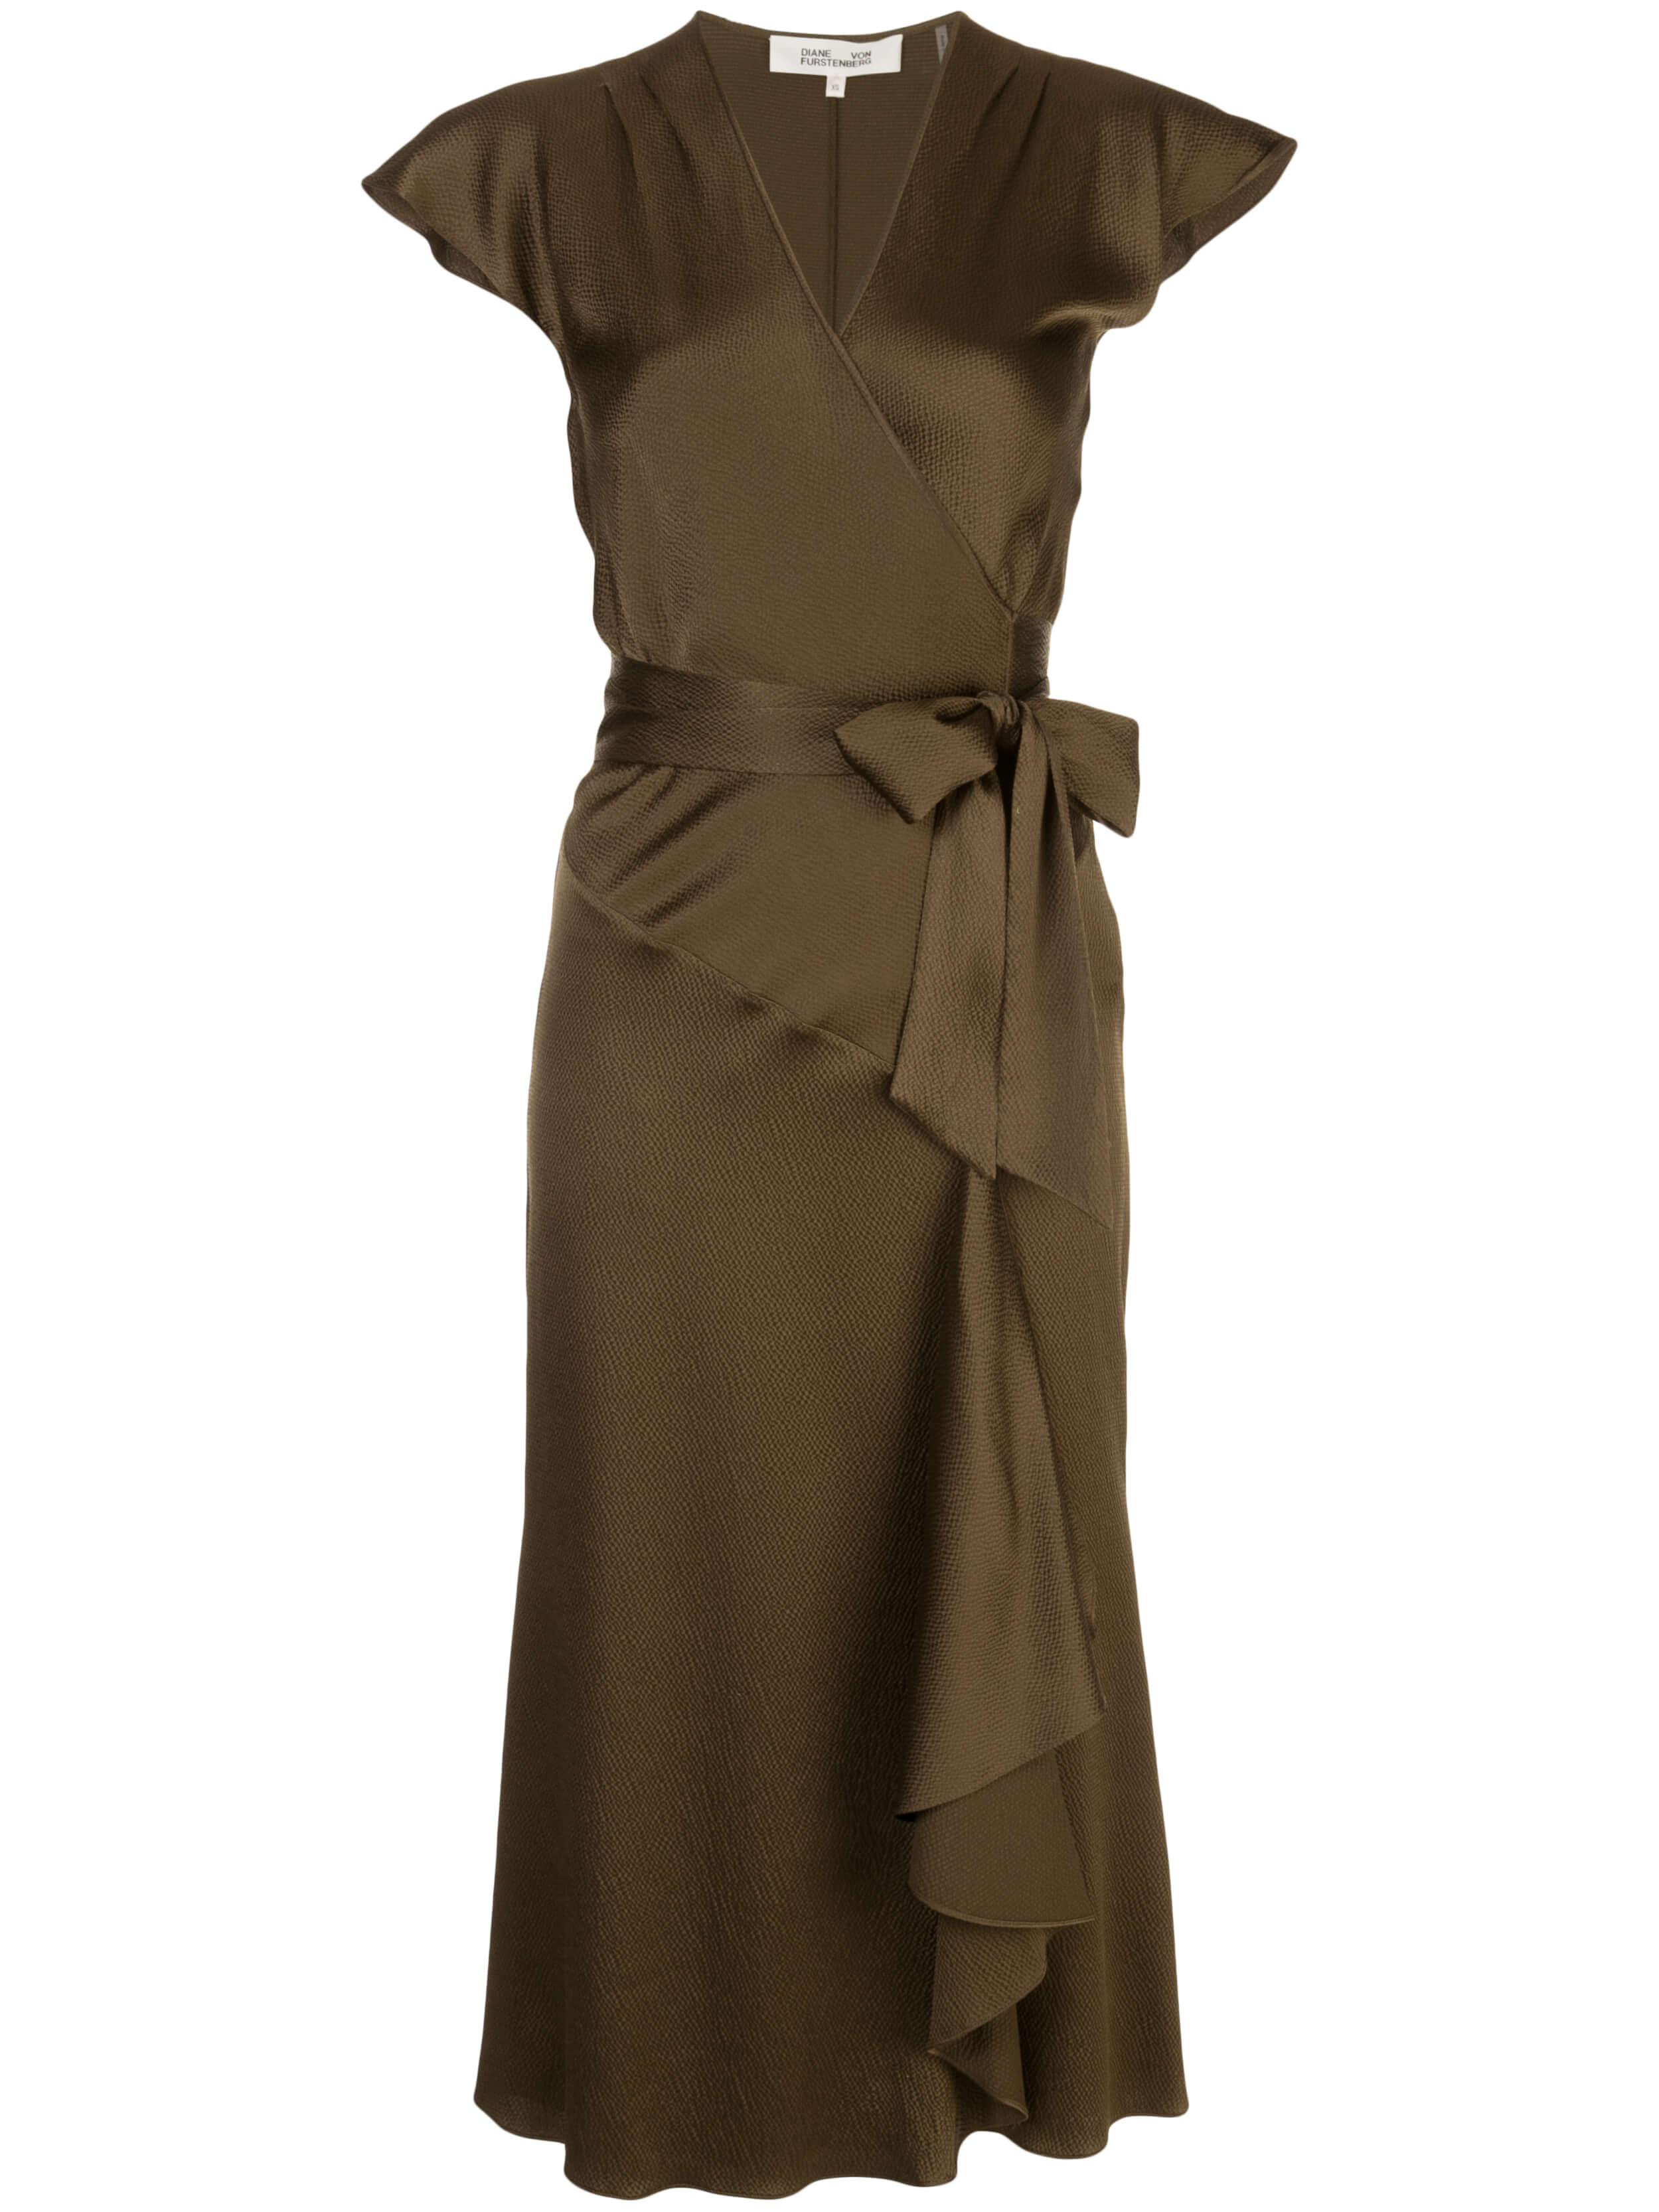 Gwendolyn Hammered Satin Wrap Dress